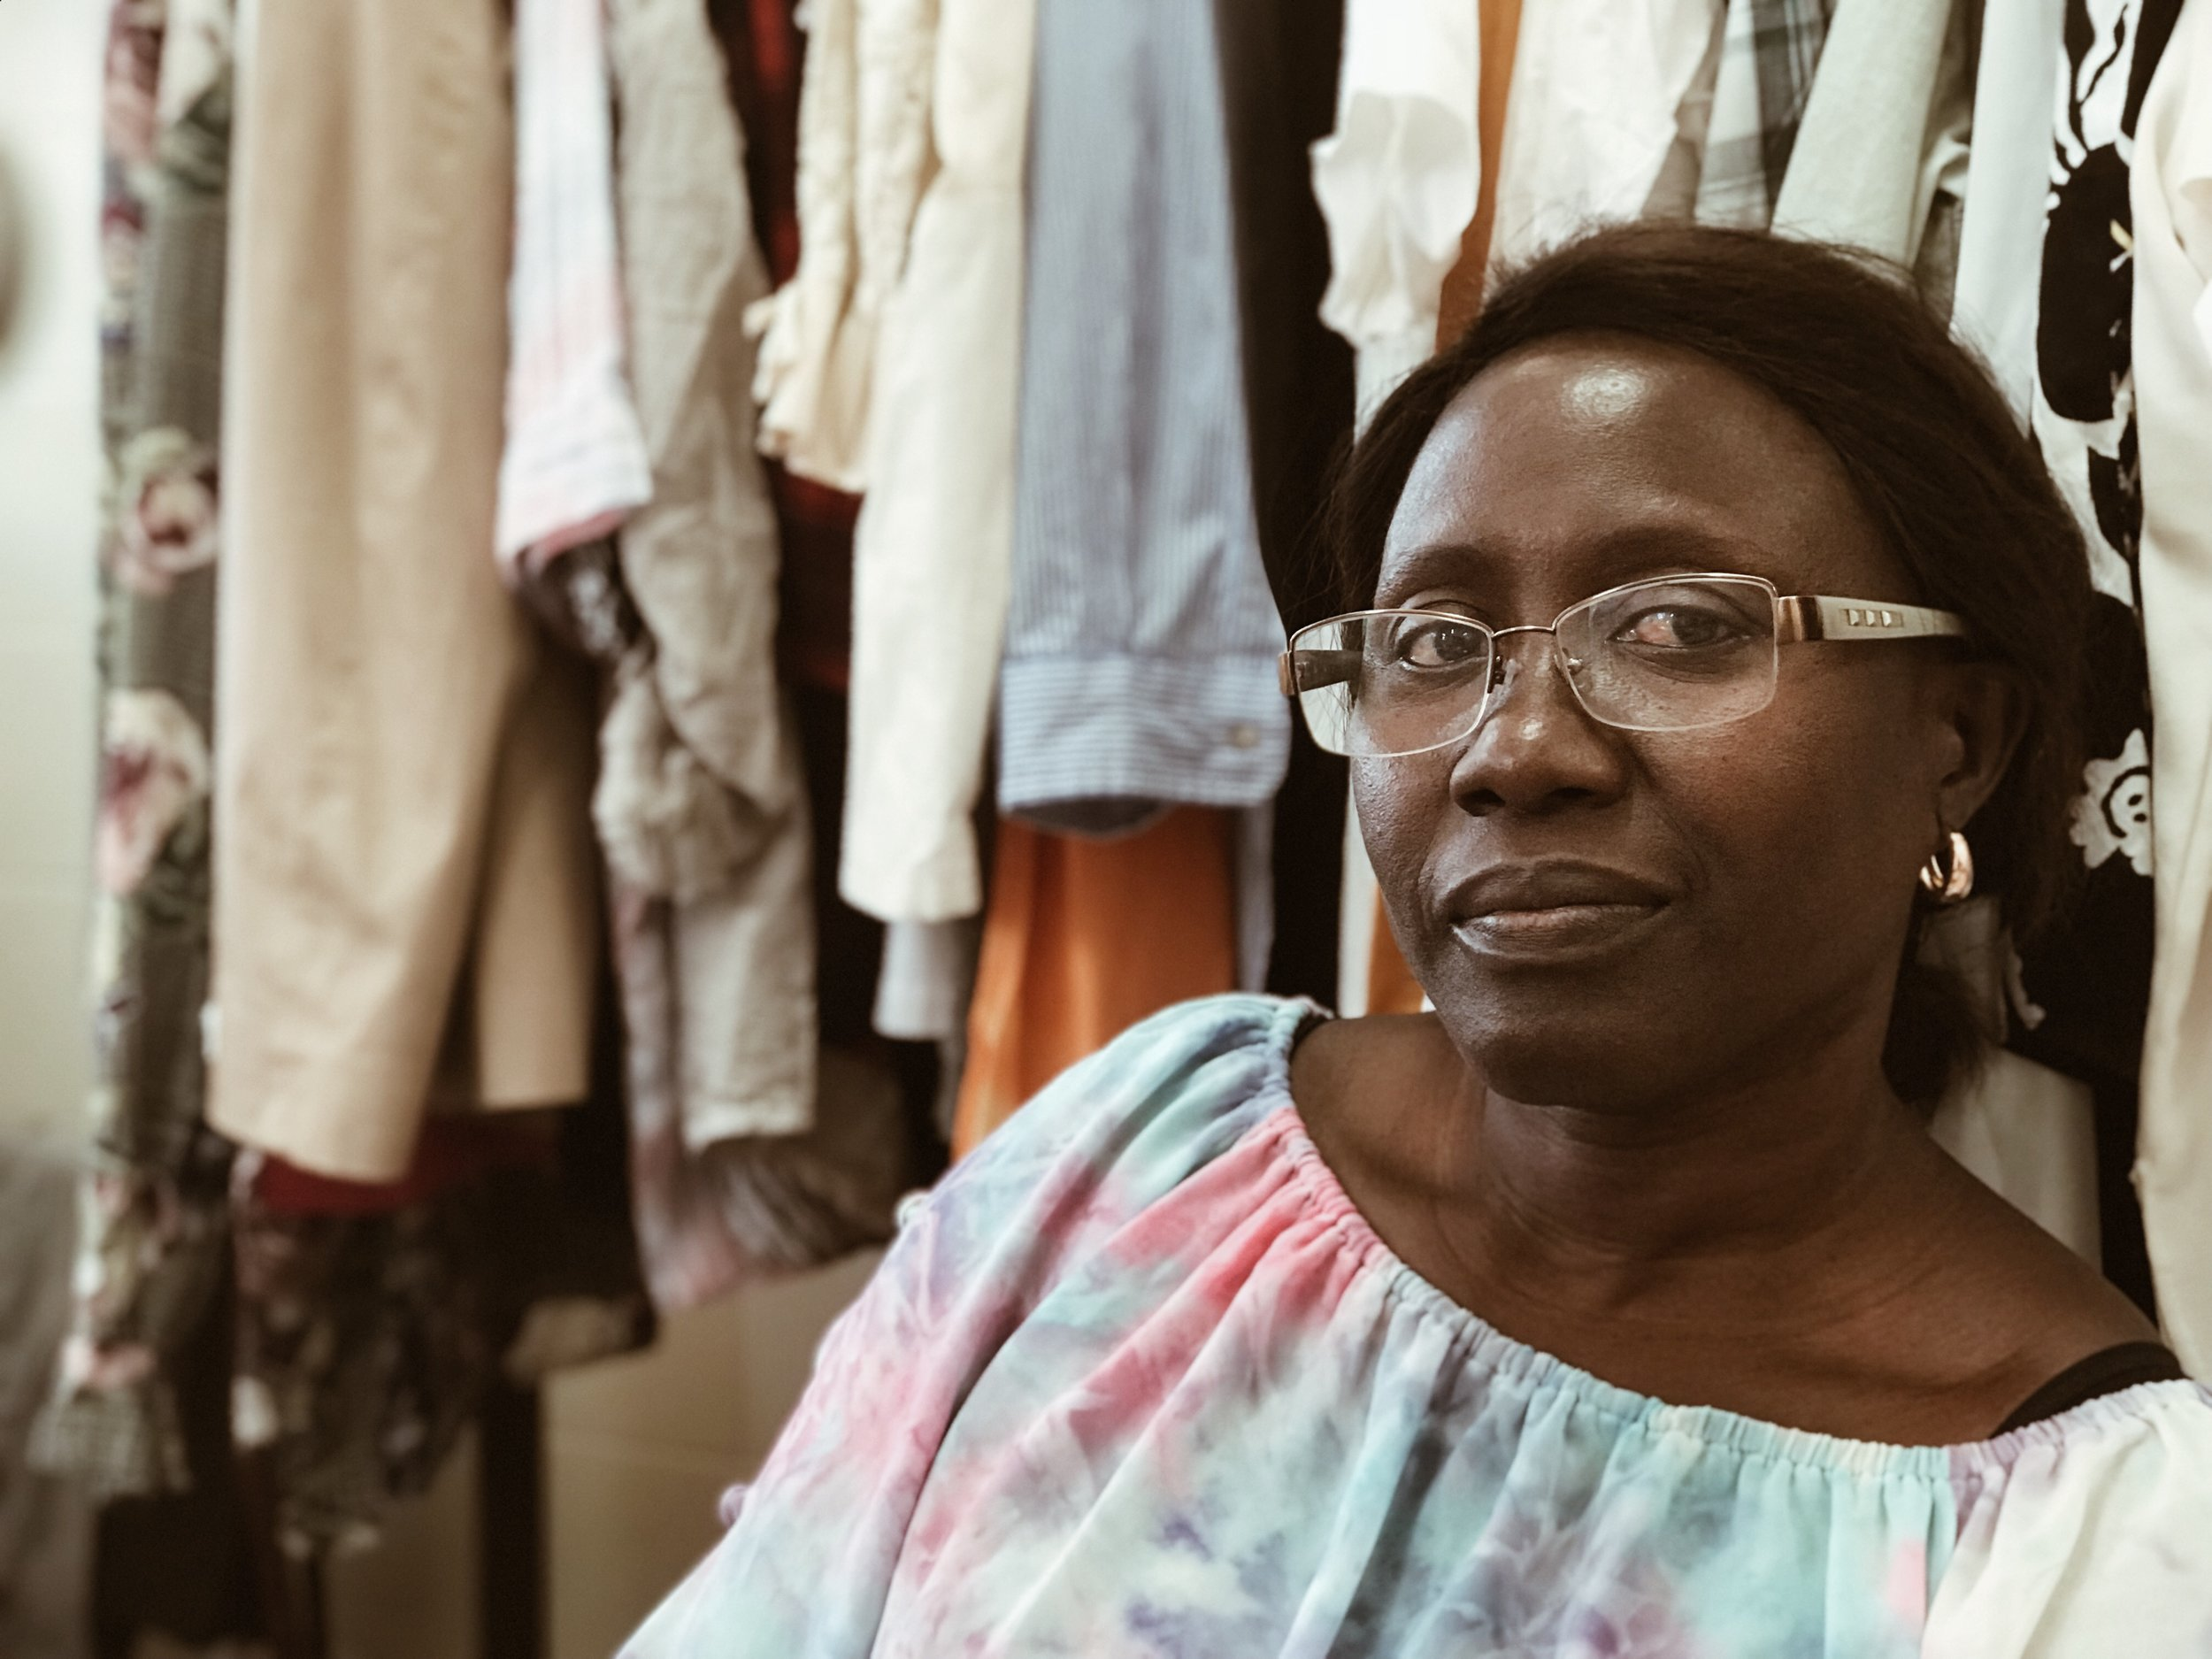 Nené, long-time client, often stops by the store to hang out with the volunteers.